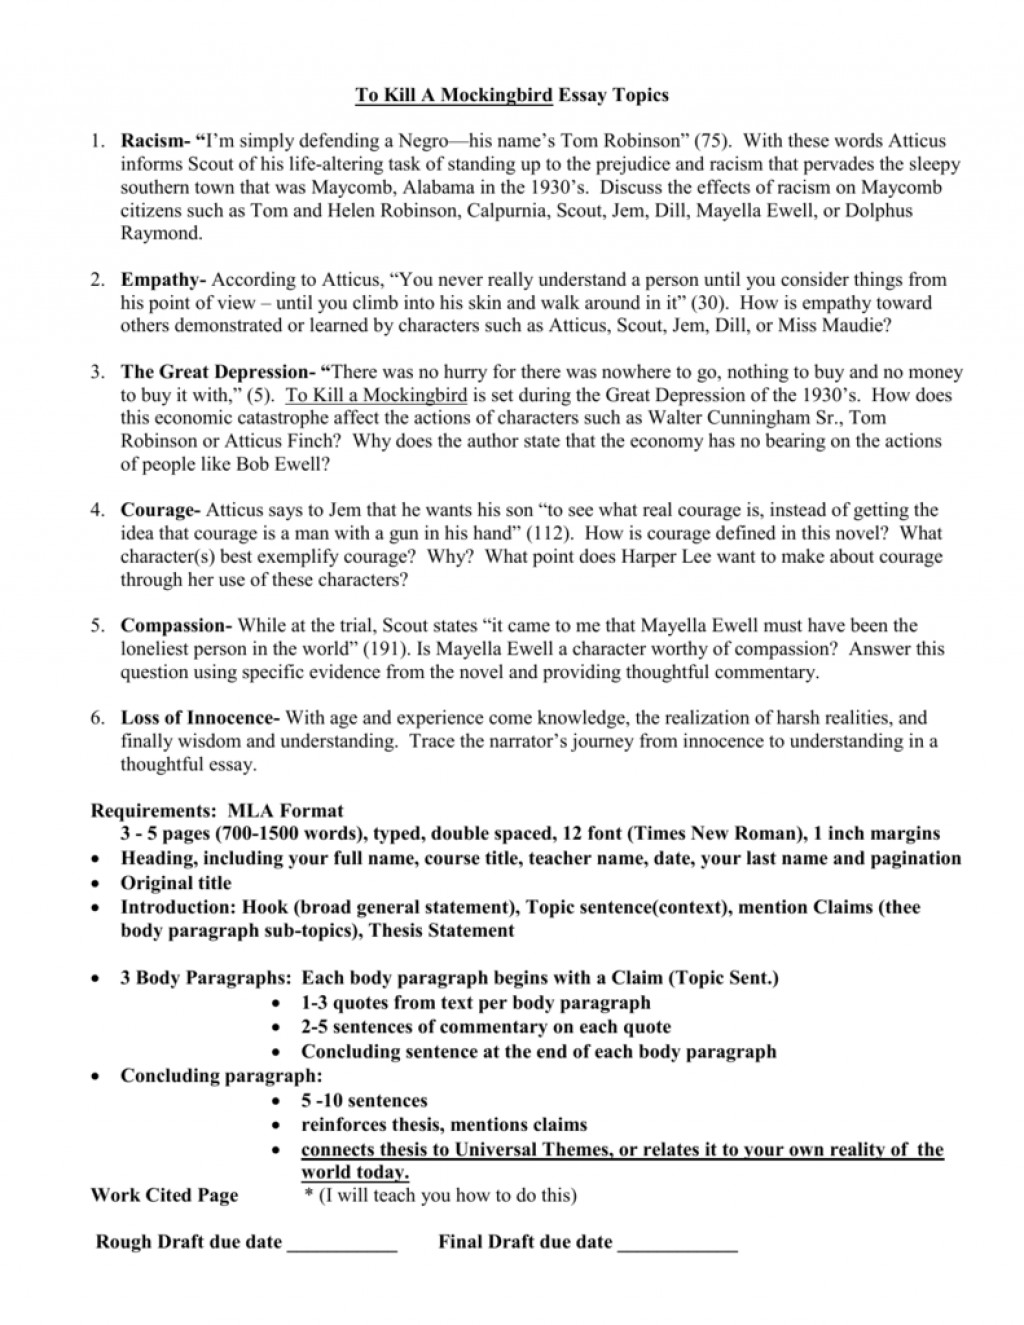 001 To Kill Mockingbird Essay Example 009245800 1 Wondrous A Topics Outline Questions Pdf Large